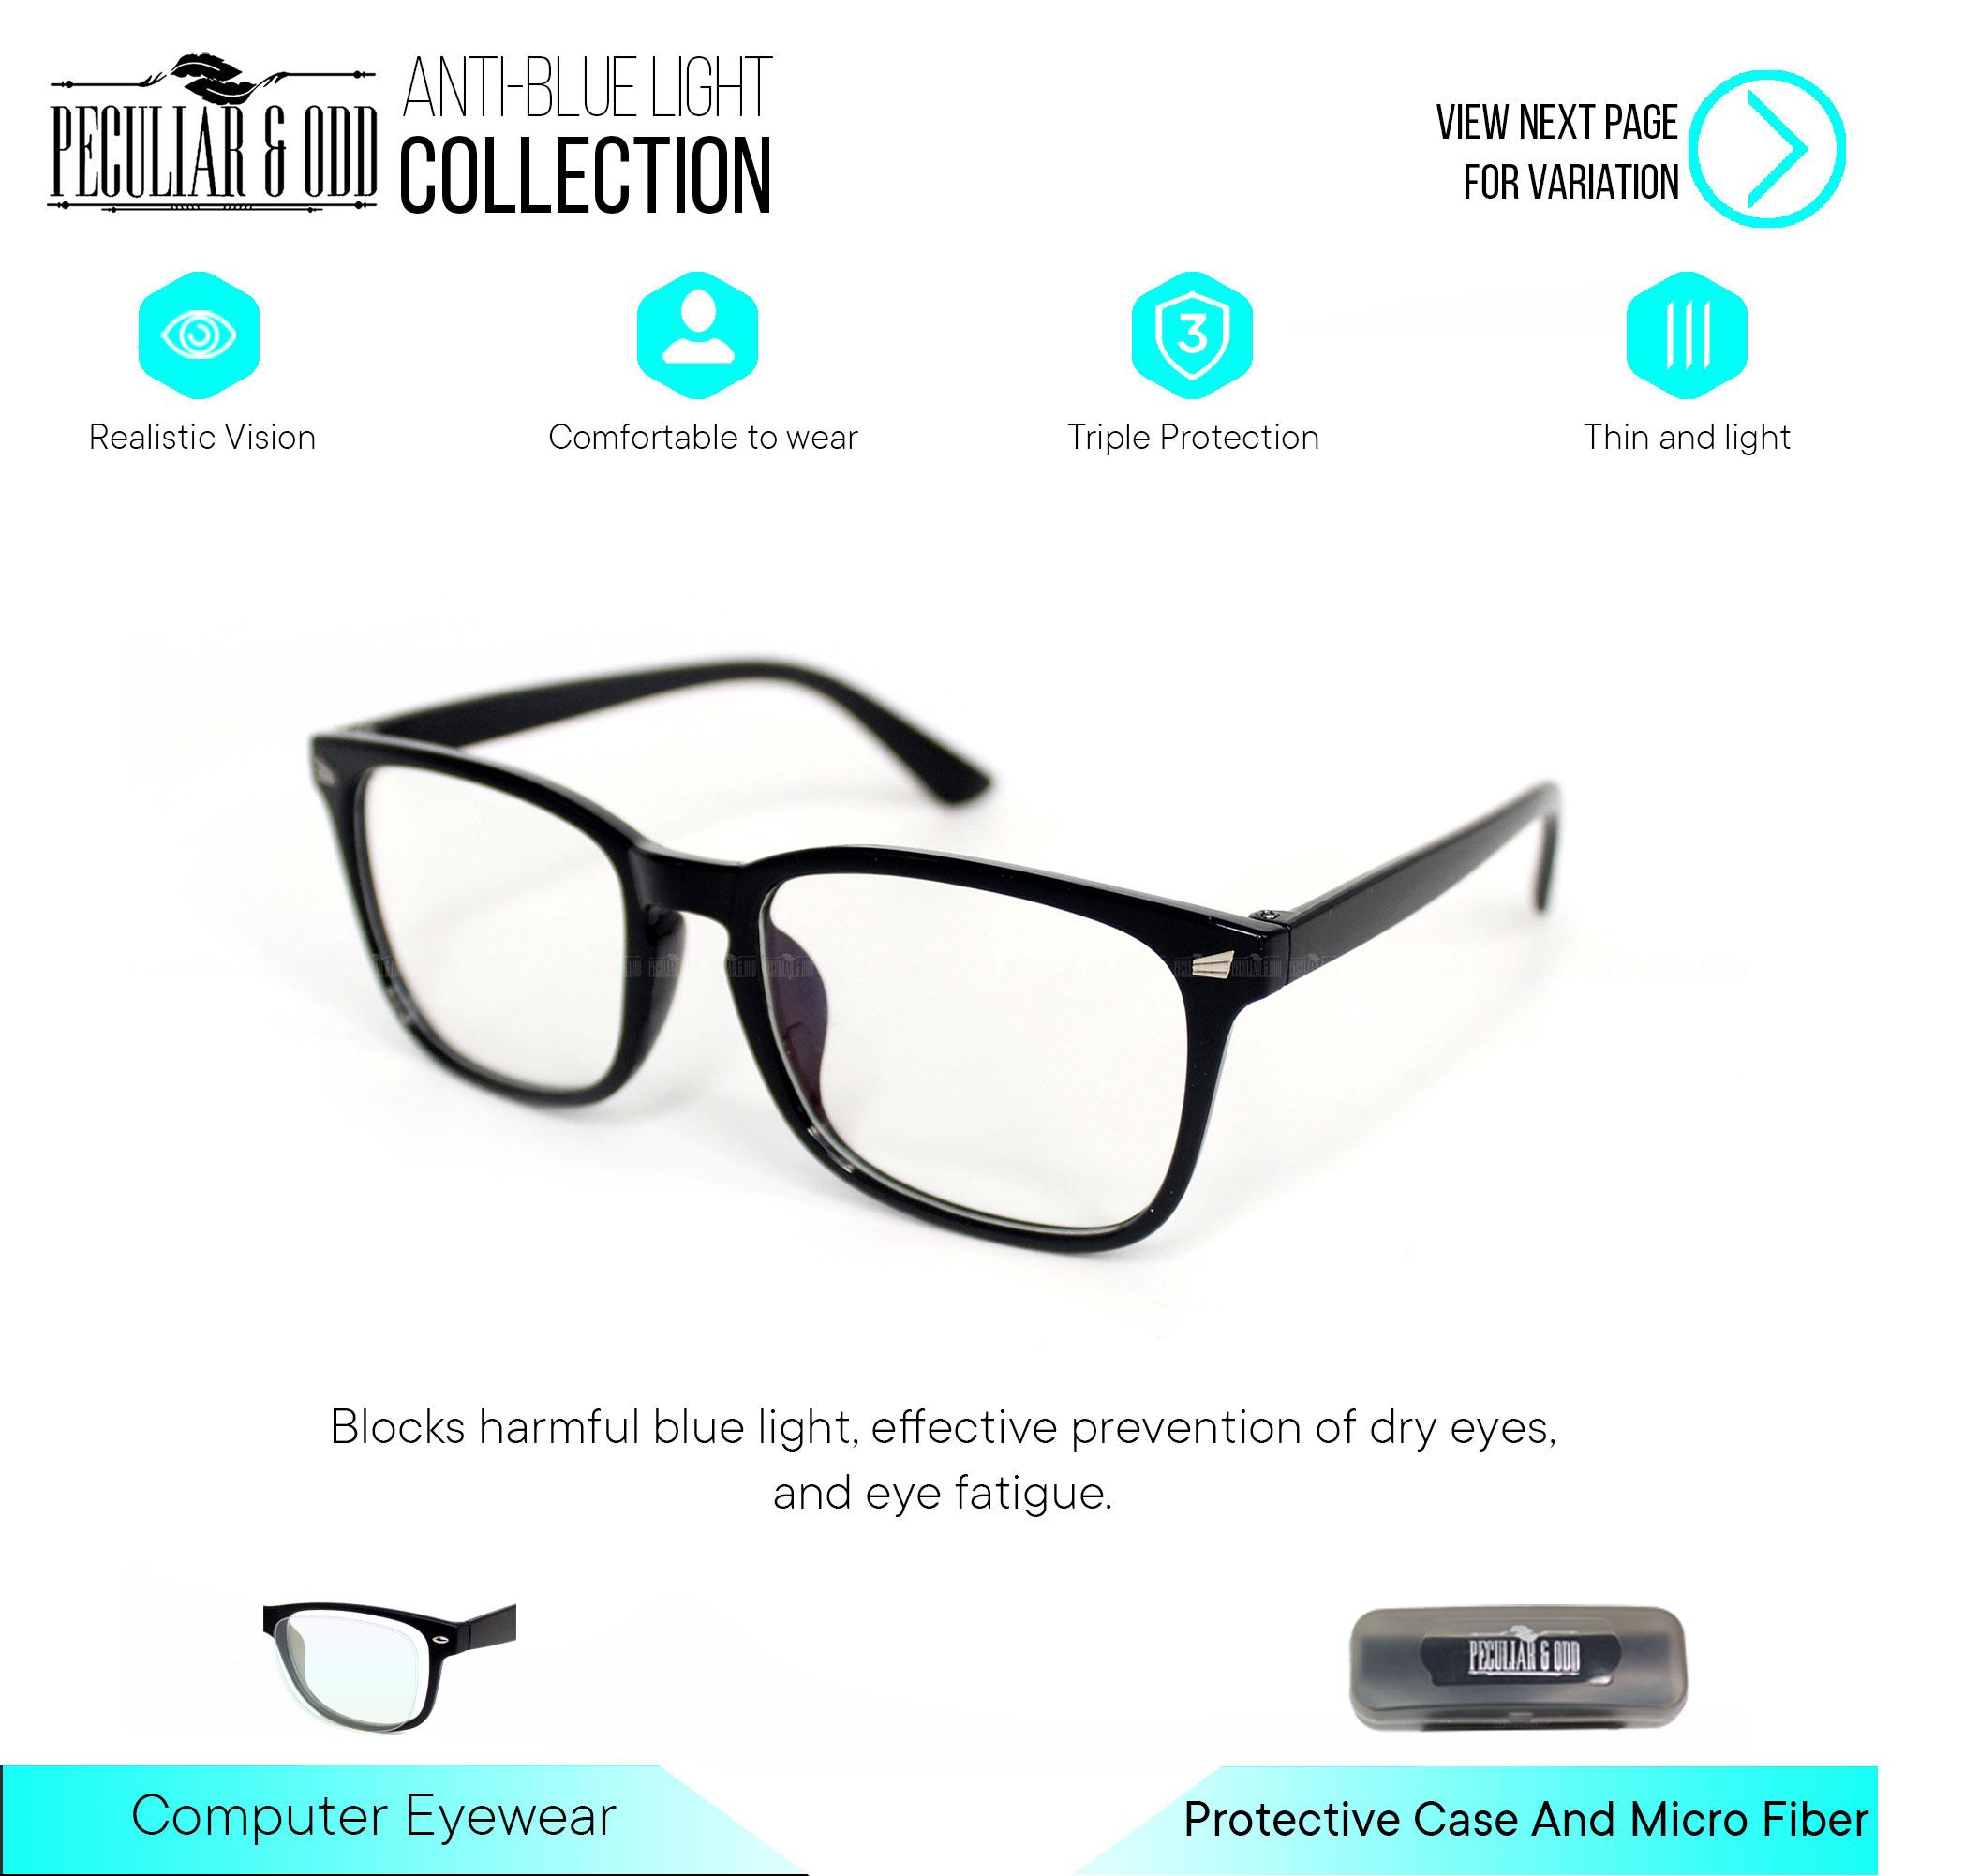 acbb0ff36adbc Peculiar Optical Square 15969 BlackClear Anti Radiation Blue Lens Computer  Eyeglass Replaceable Lenses Unisex Eyewear 1